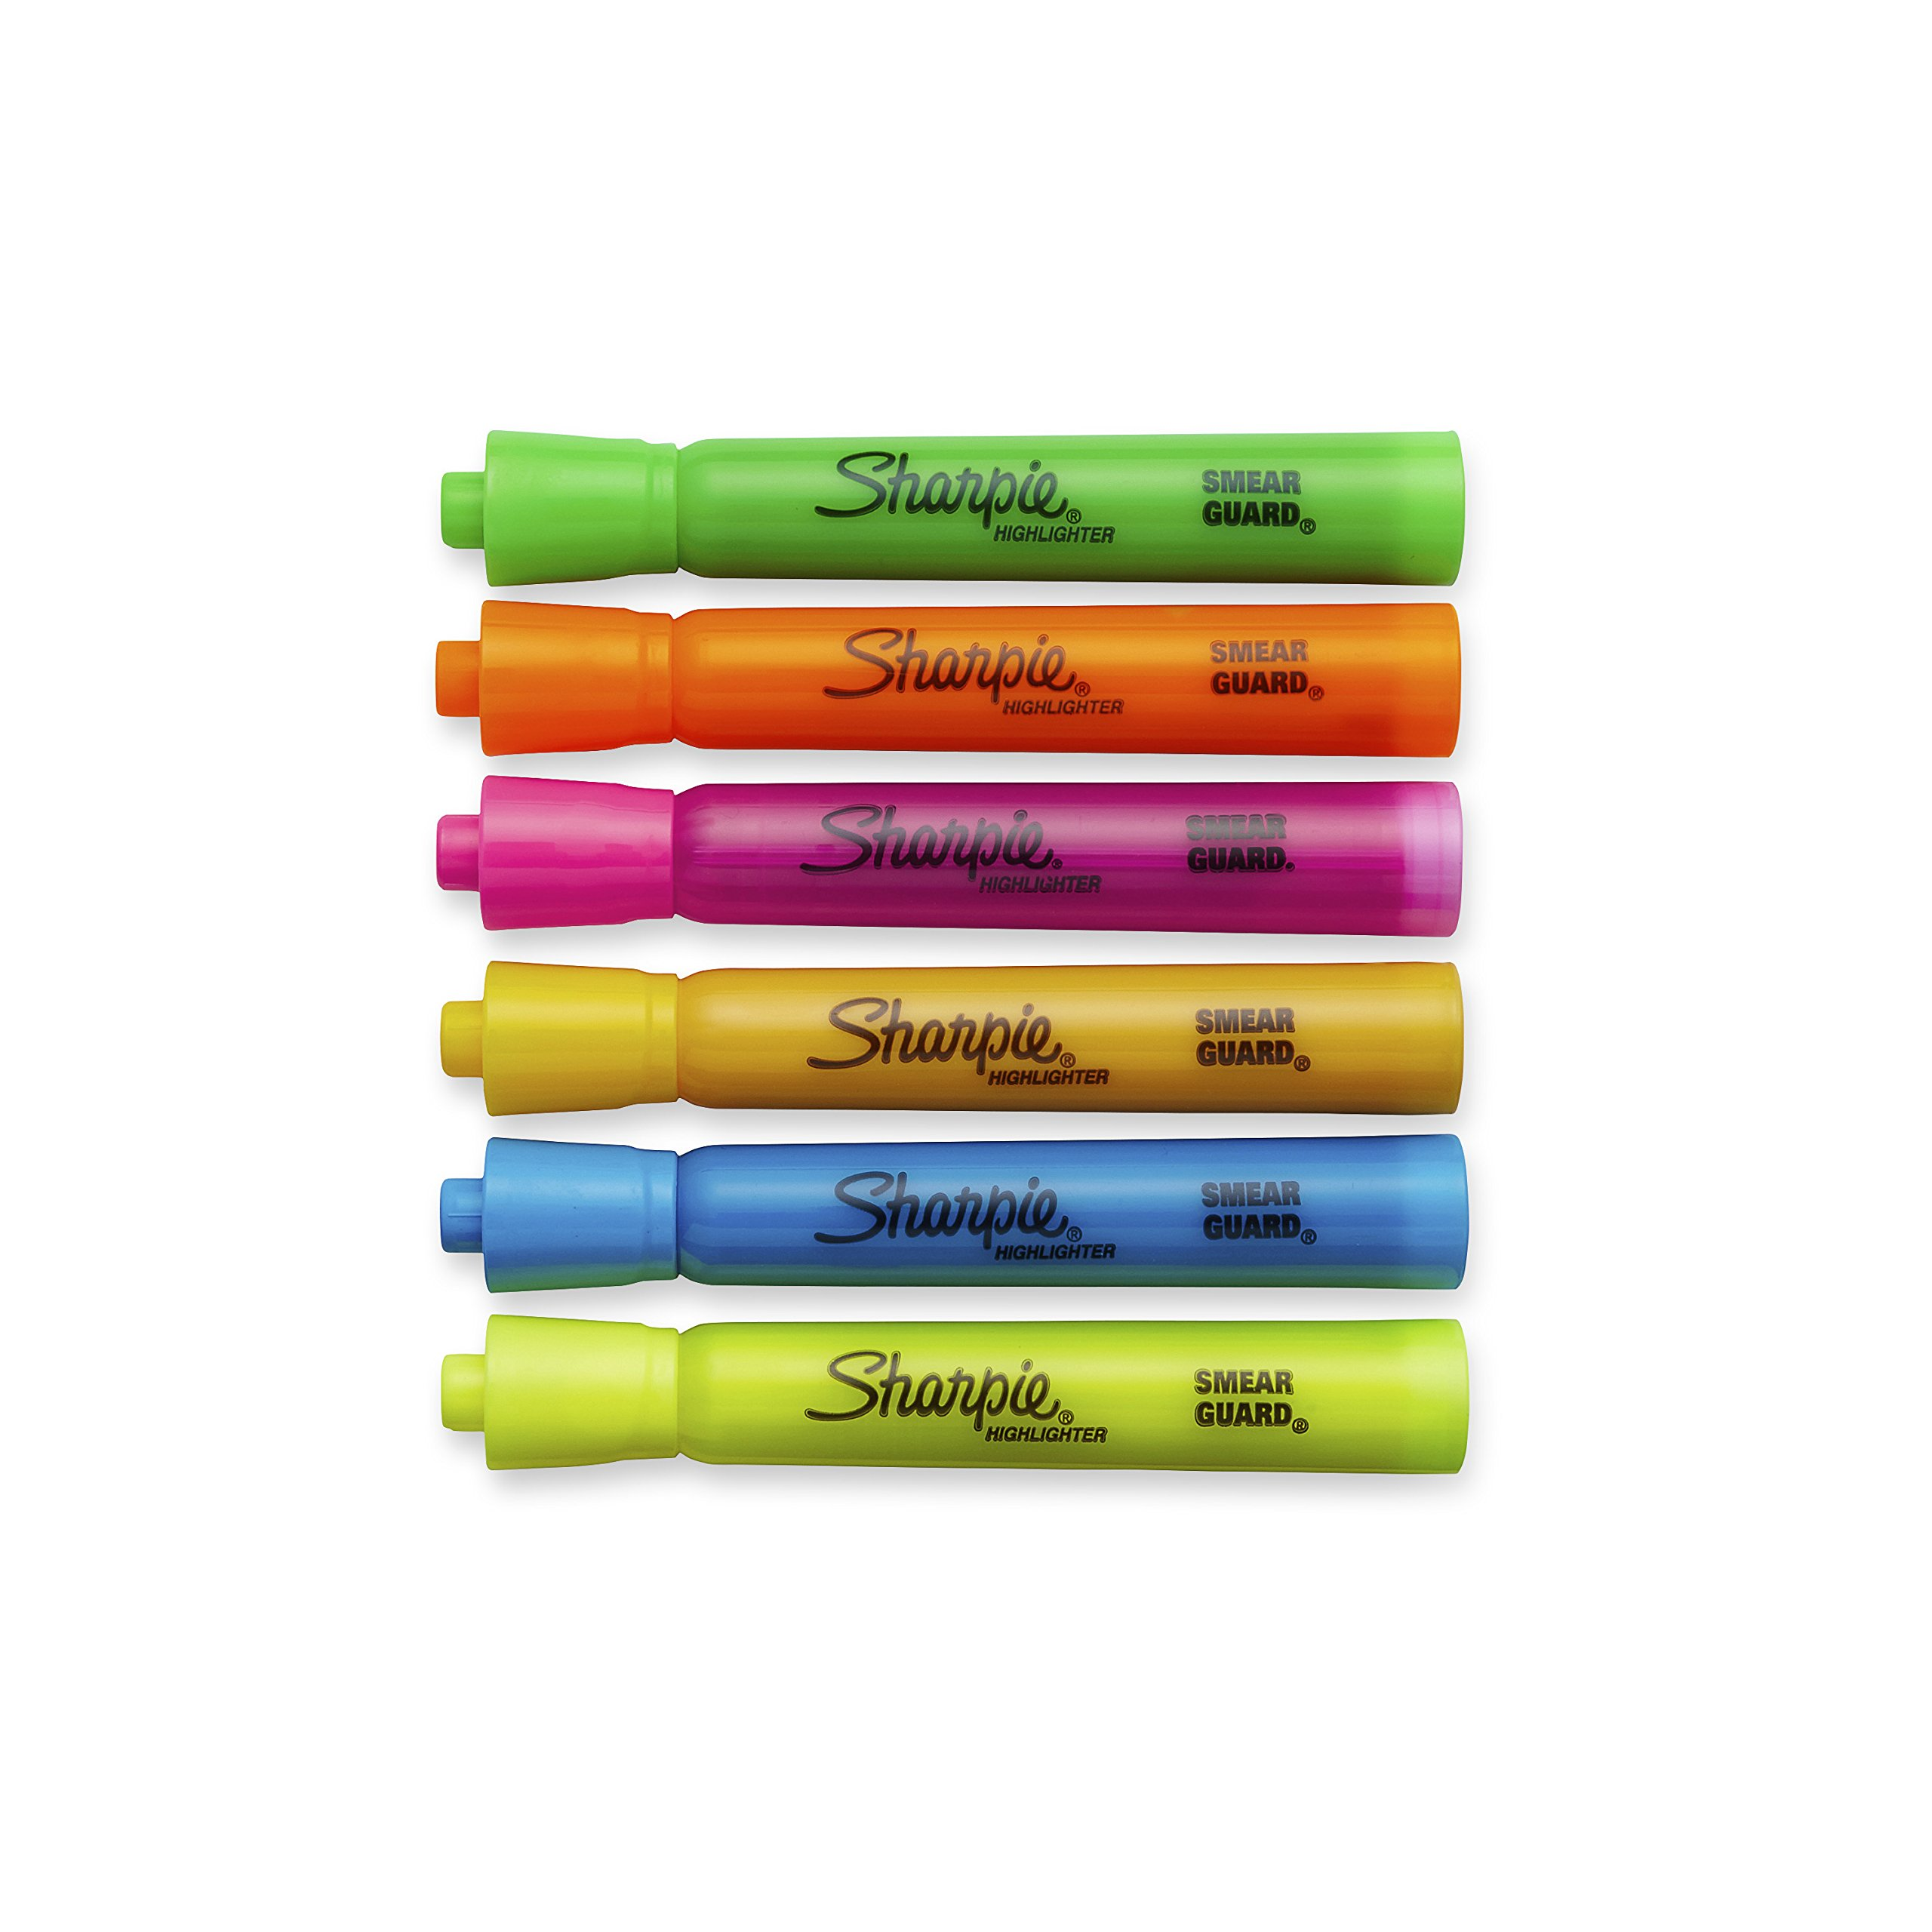 Sharpie Tank Style Highlighters, Chisel Tip, Assorted Colors, 12 Packs of 6 (72 Count) by Sharpie (Image #3)